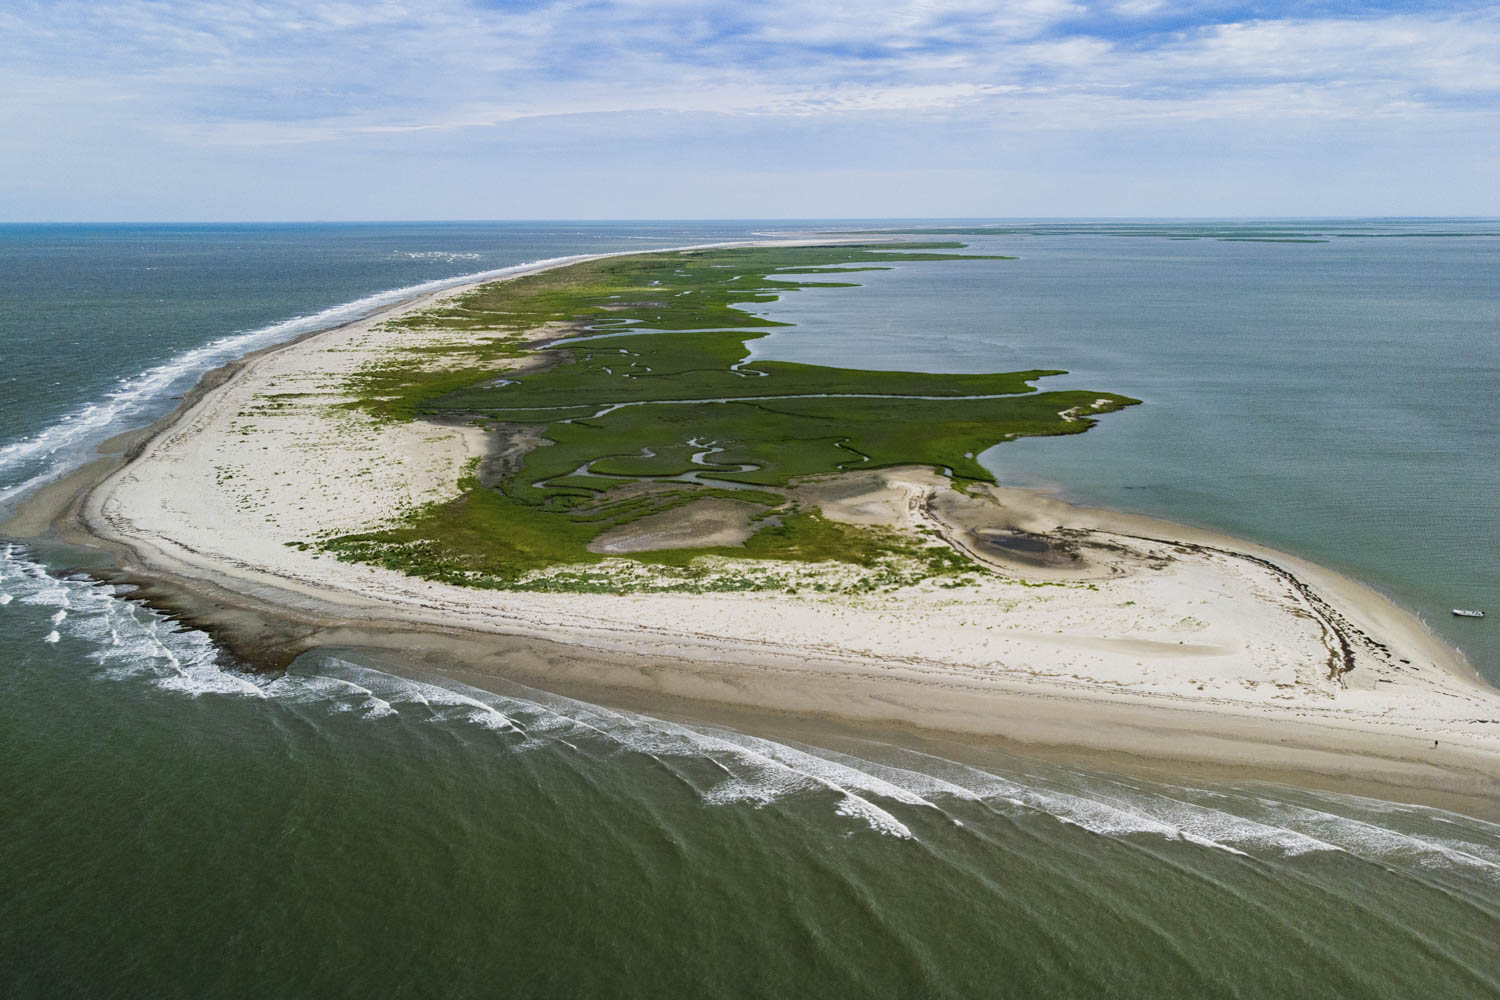 UVA researchers conduct long-term studies on the barrier islands and seaside bays of the Eastern Shore.